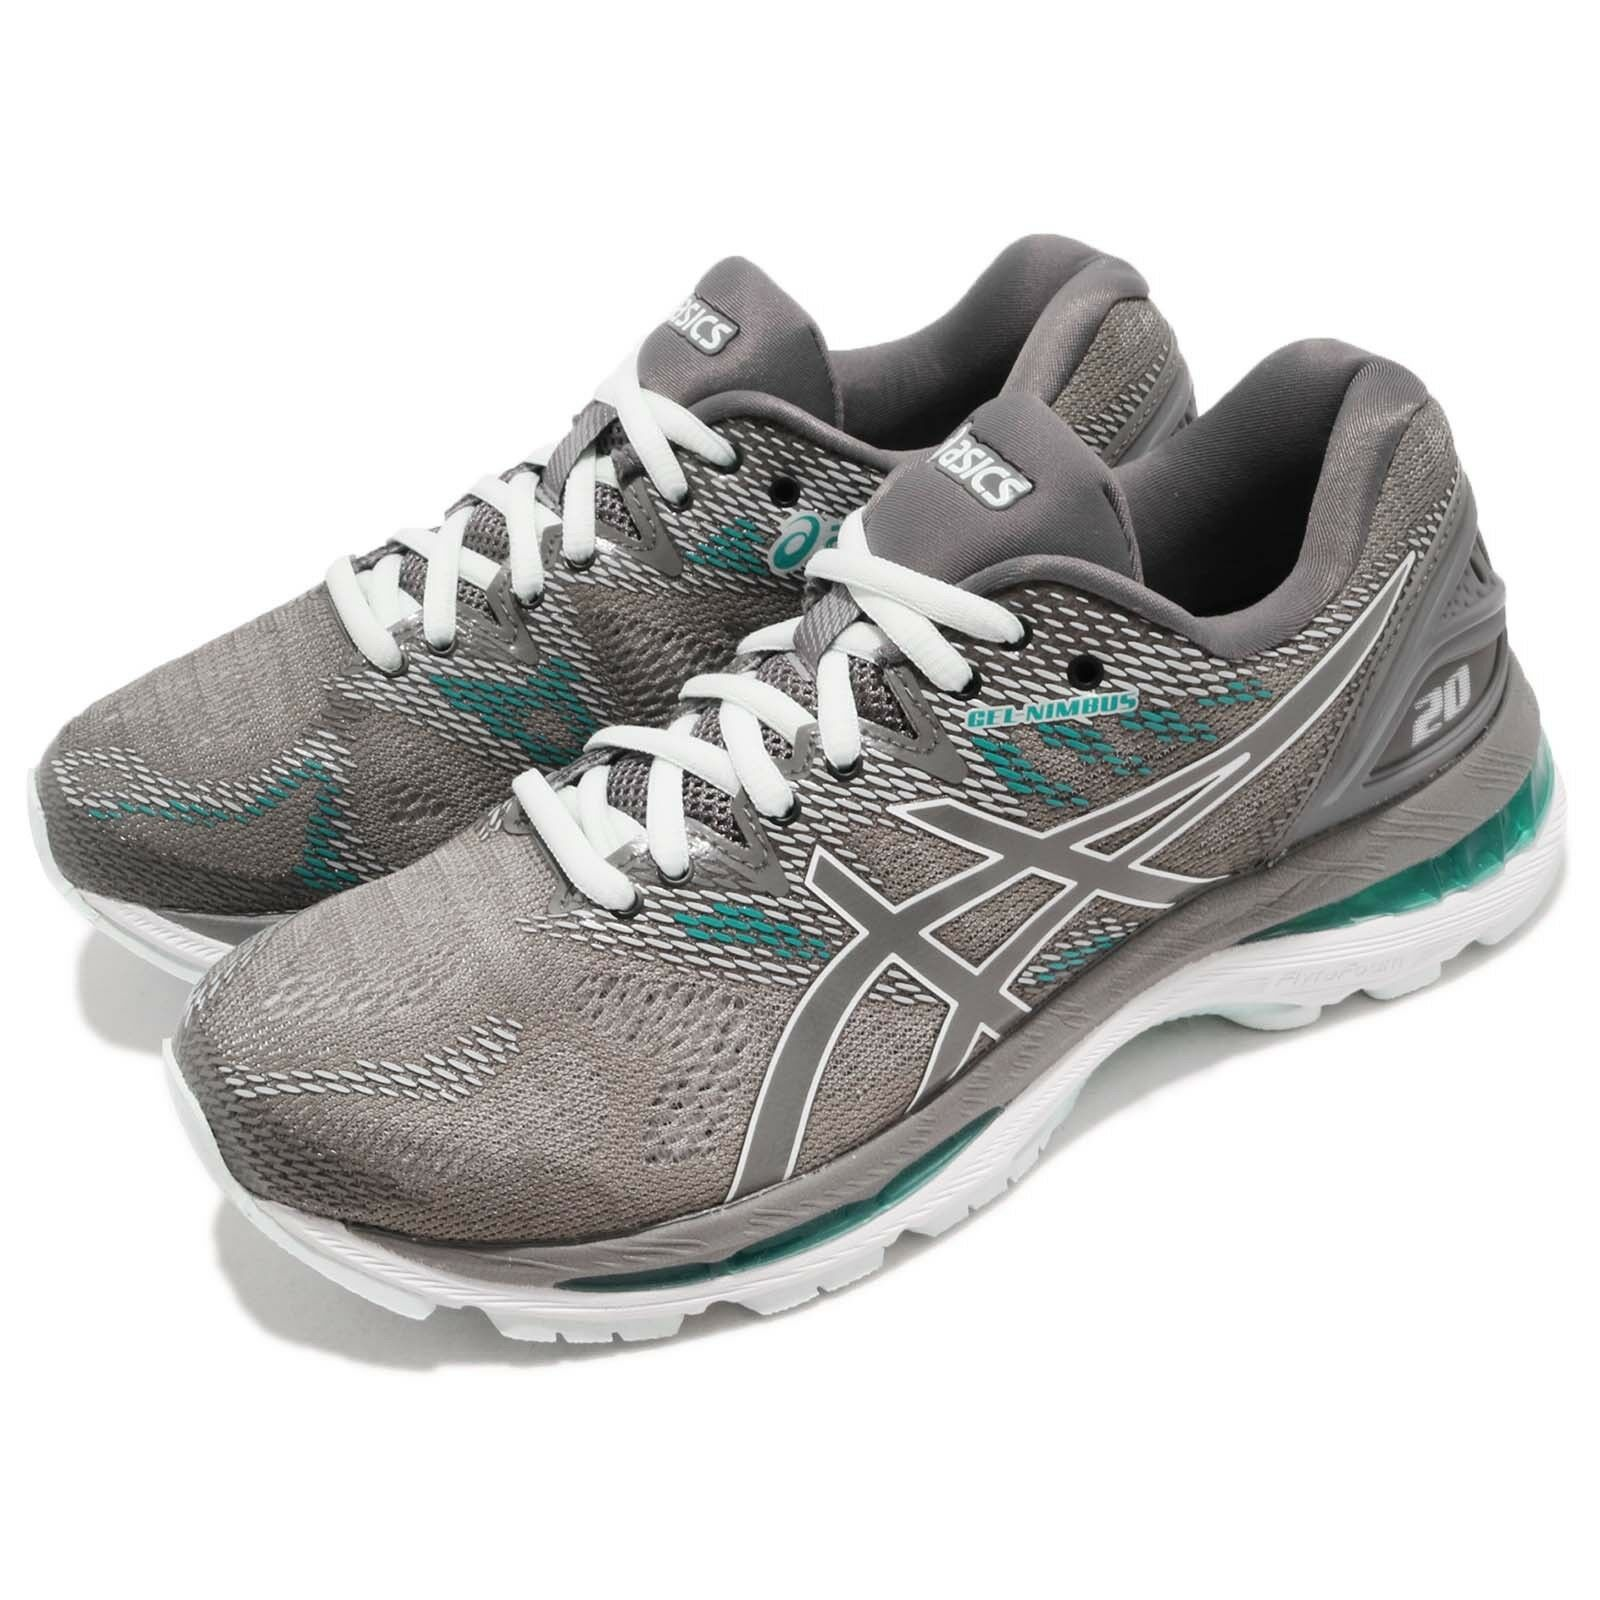 Asics Gel-Nimbus 20 D Wide Carbon Grey Green Womens Running shoes T851N-020